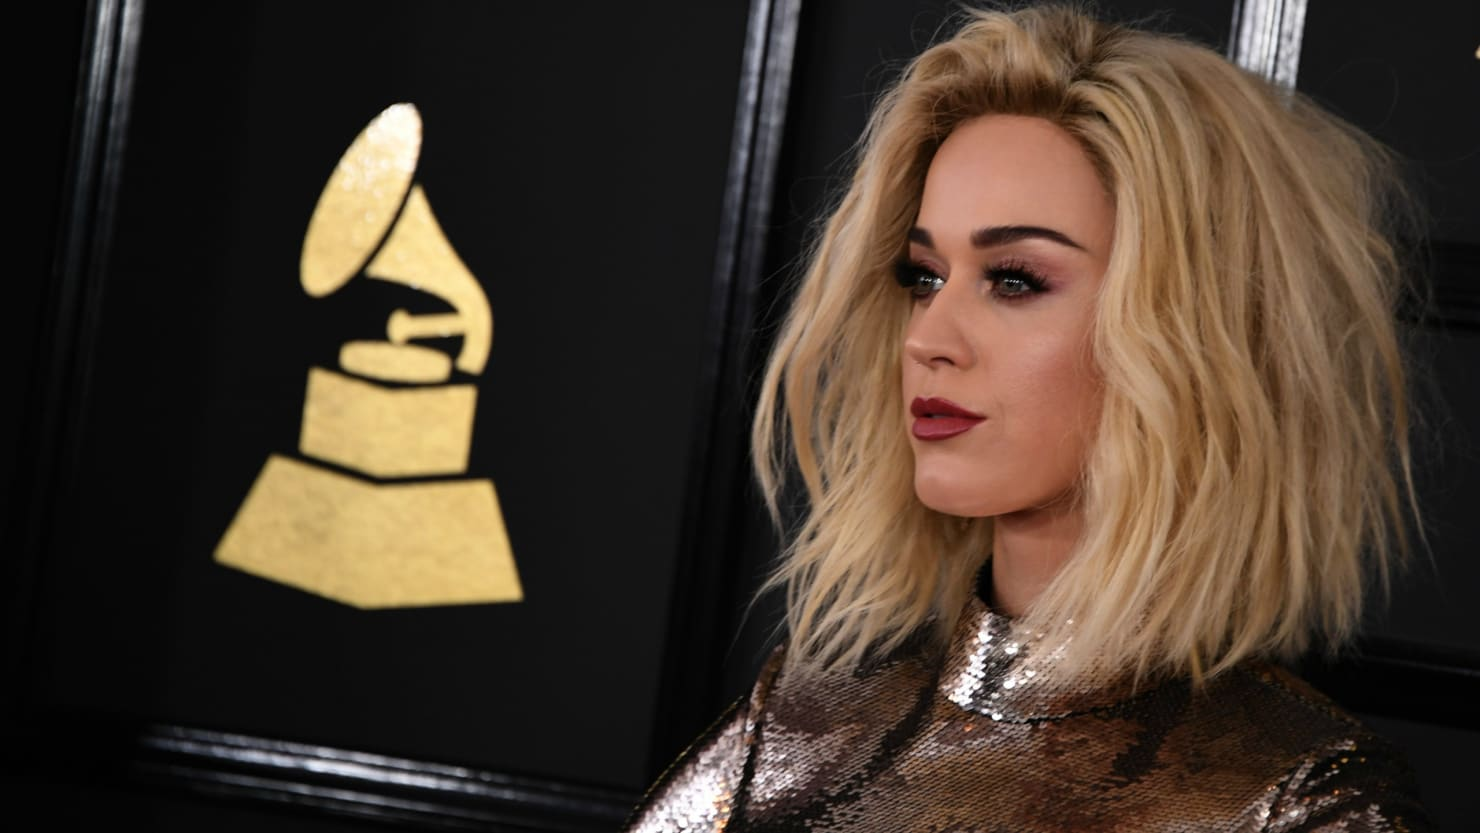 Report: Kesha Told Lady Gaga That Dr. Luke Raped Katy Perry